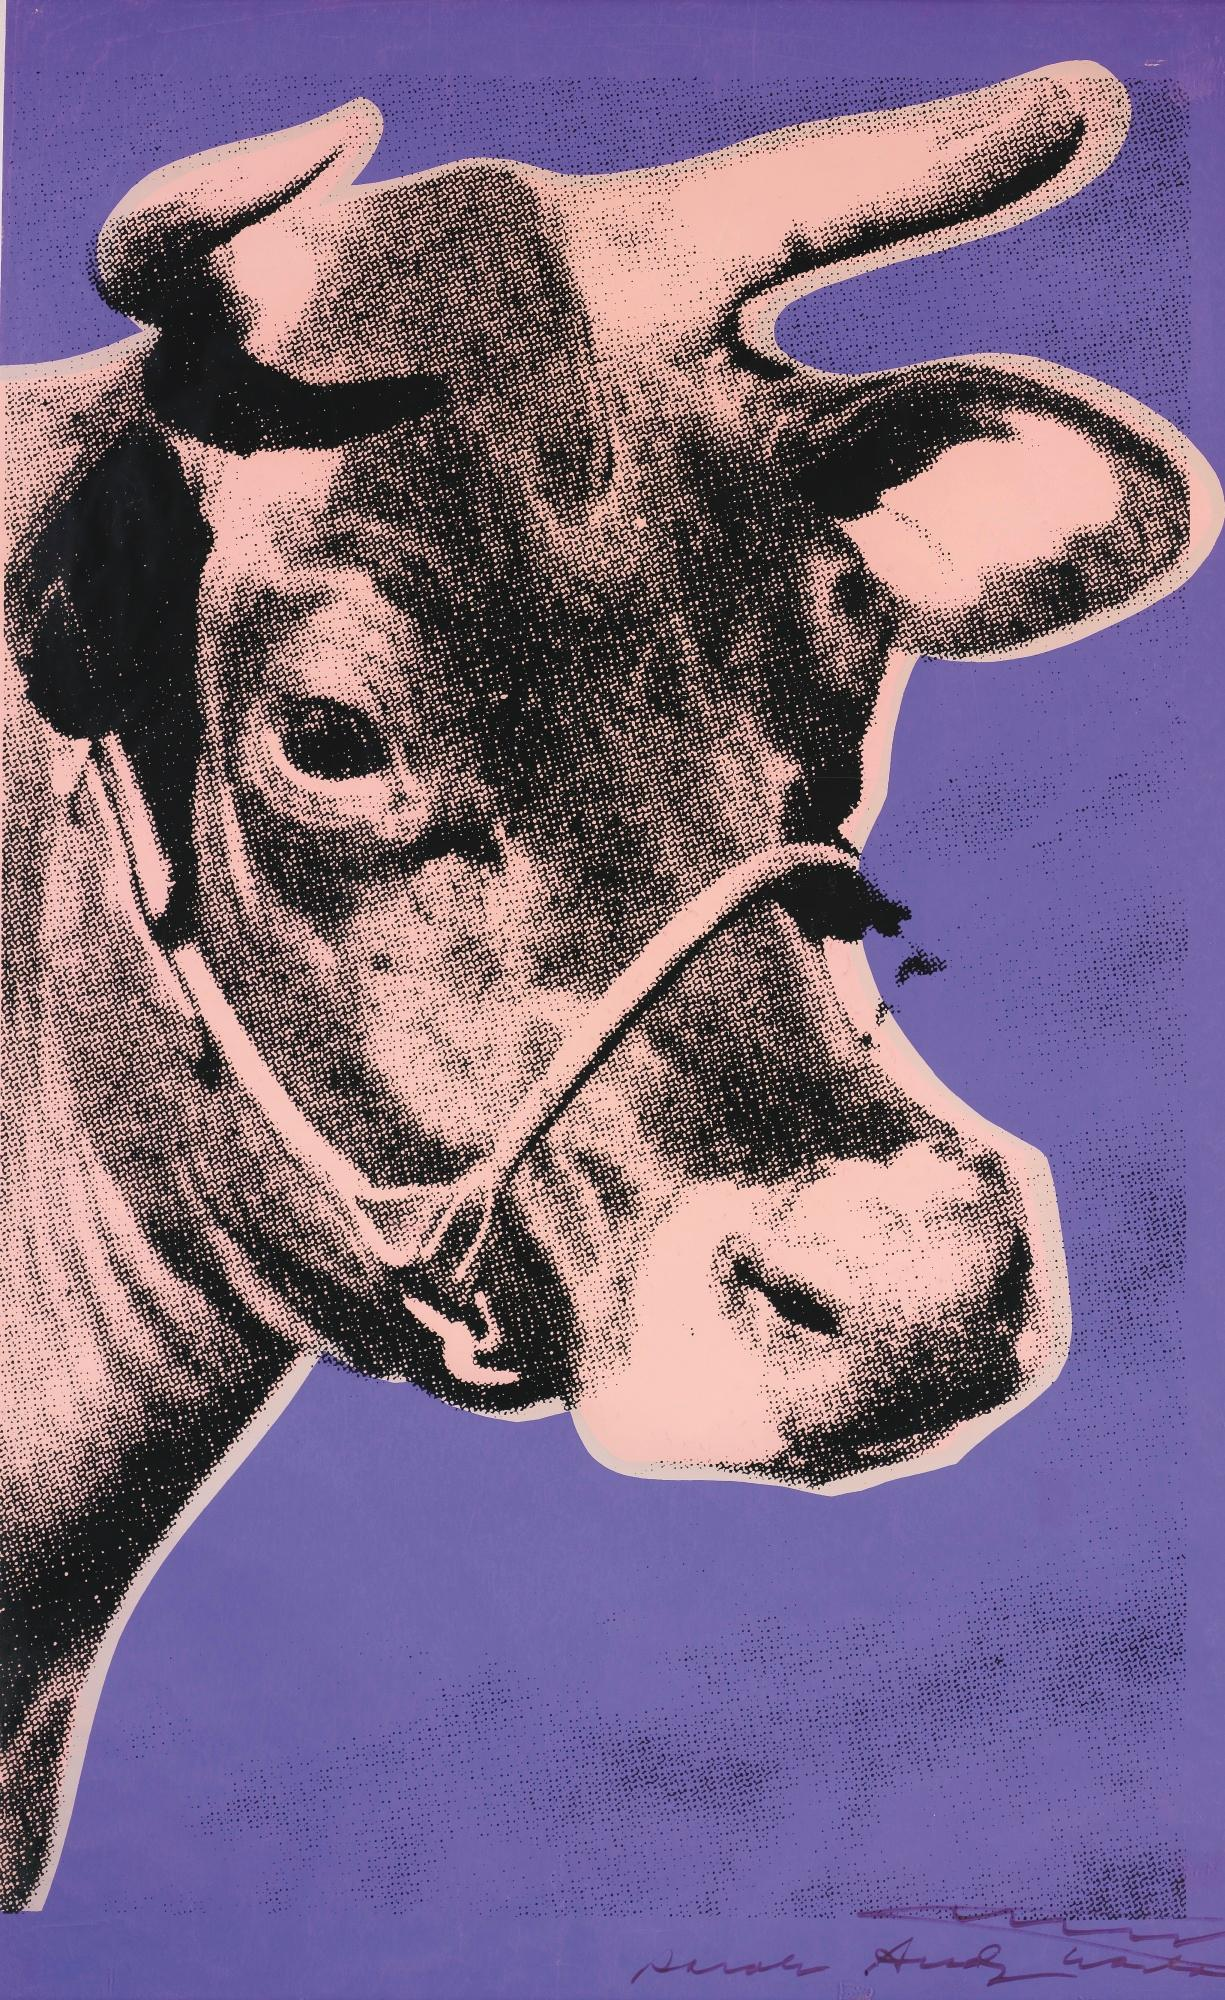 Cow (F & S II12a) by Andy Warhol